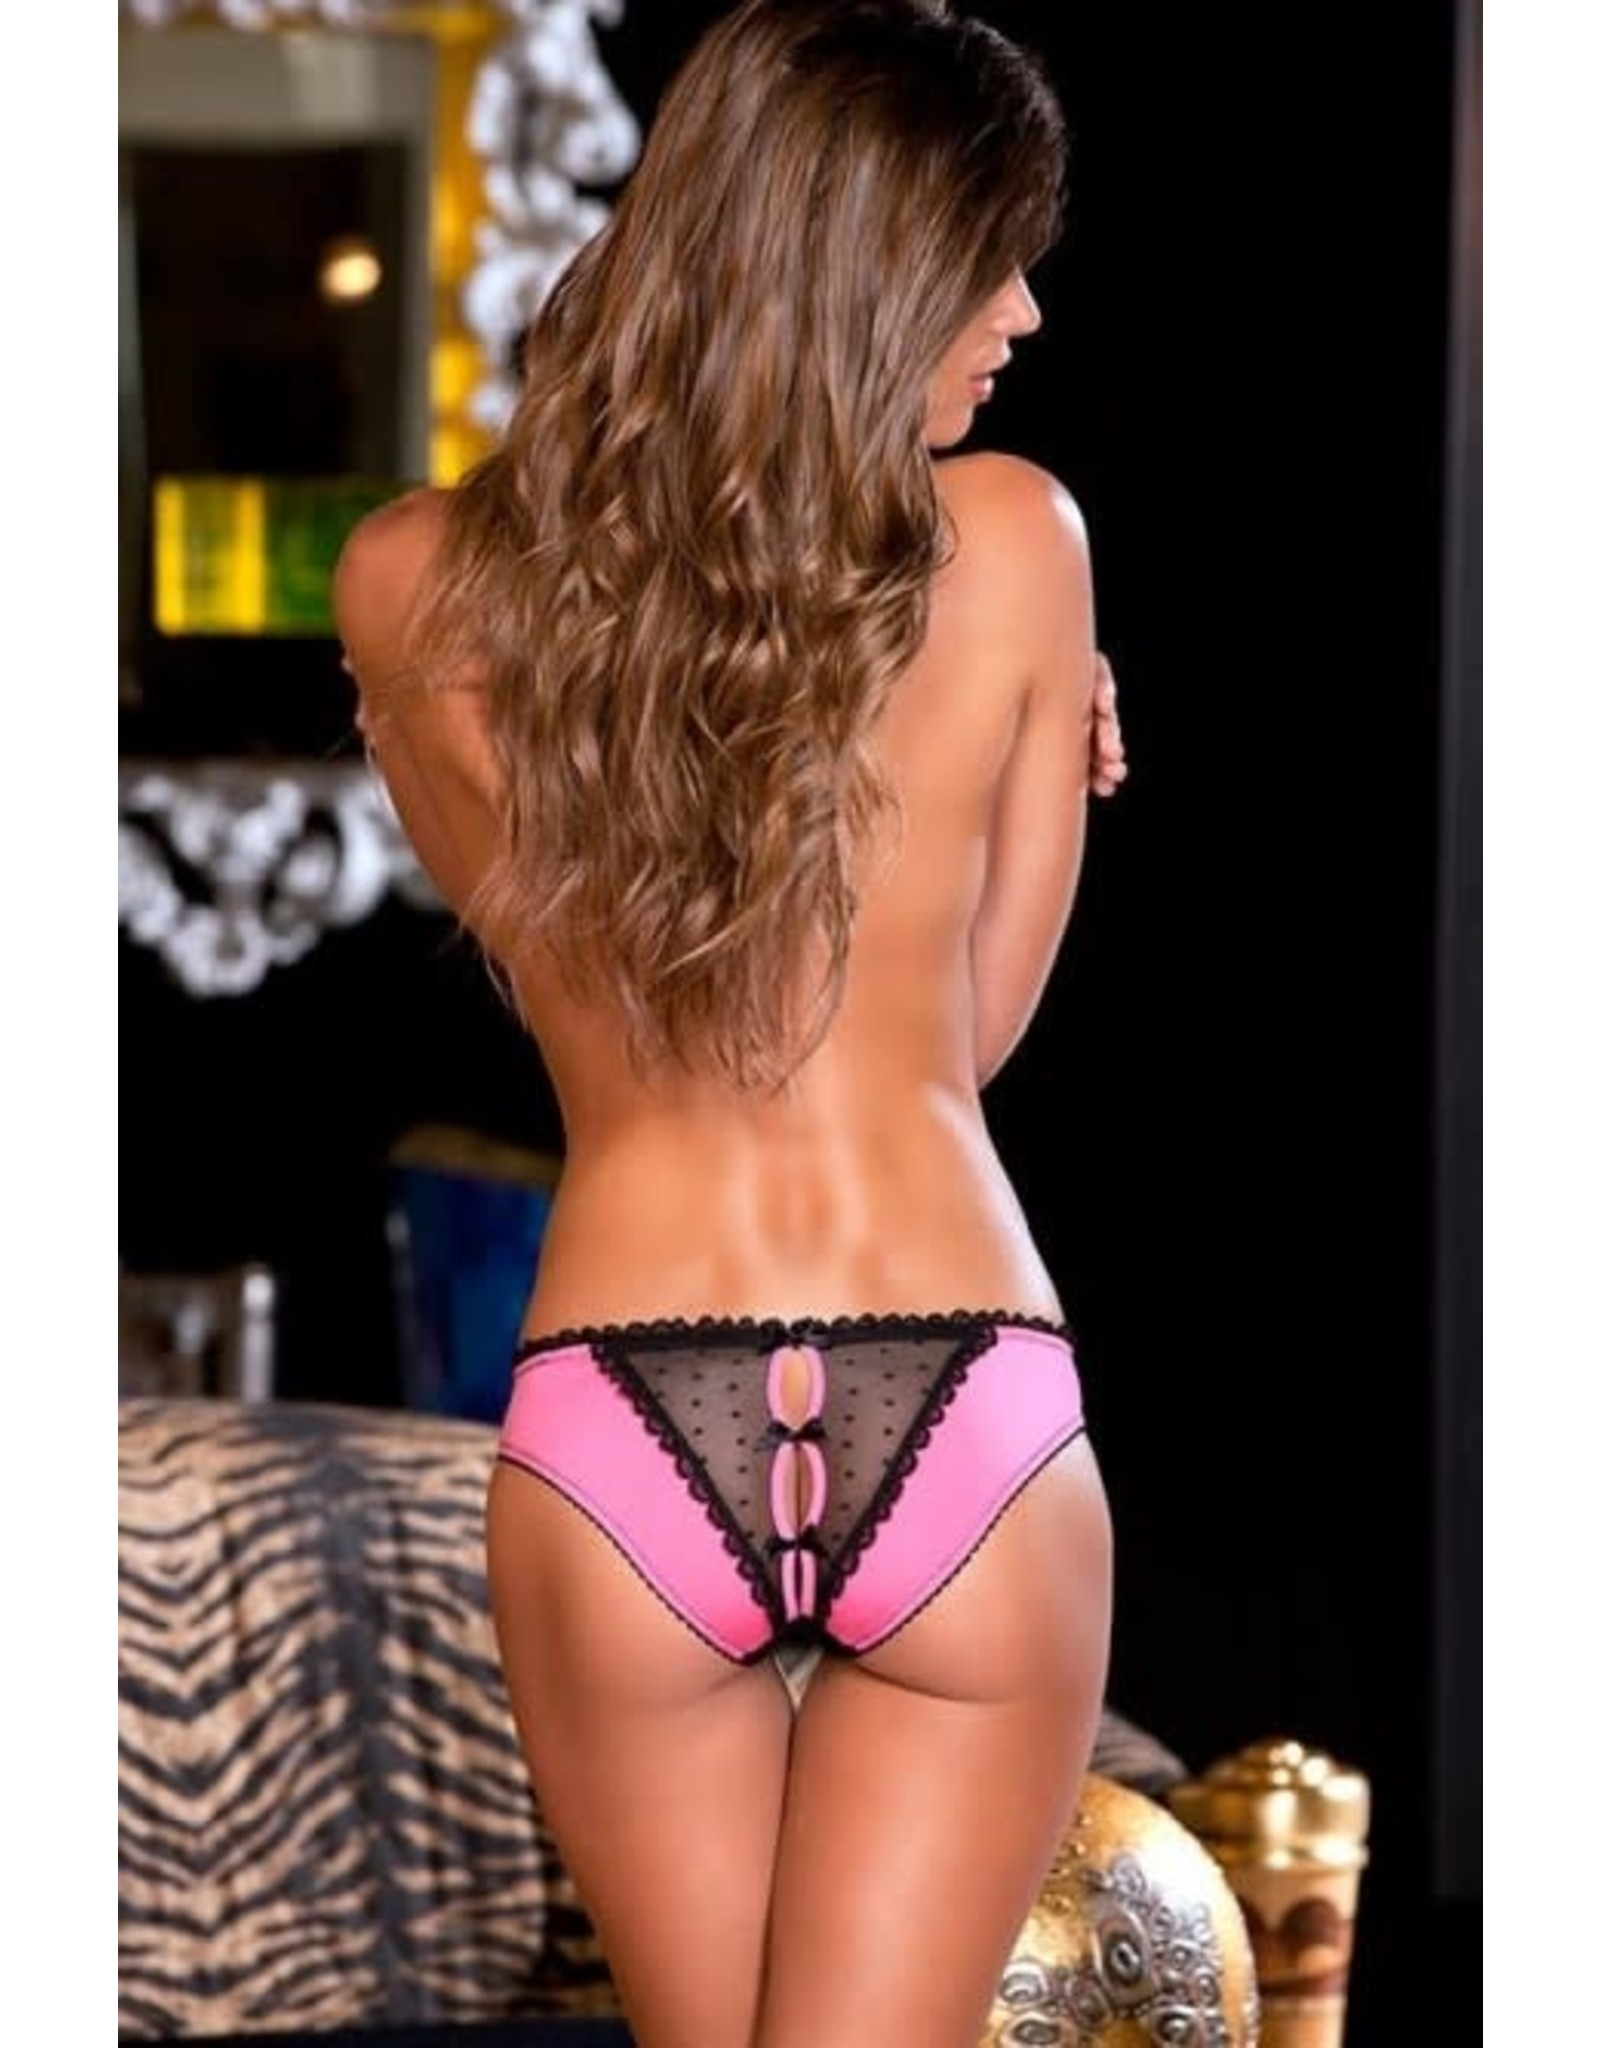 RENE ROFE LINGERIE FRILLS CROTCHLESS PANTY WITH BACK BOWS - PINK - S/M